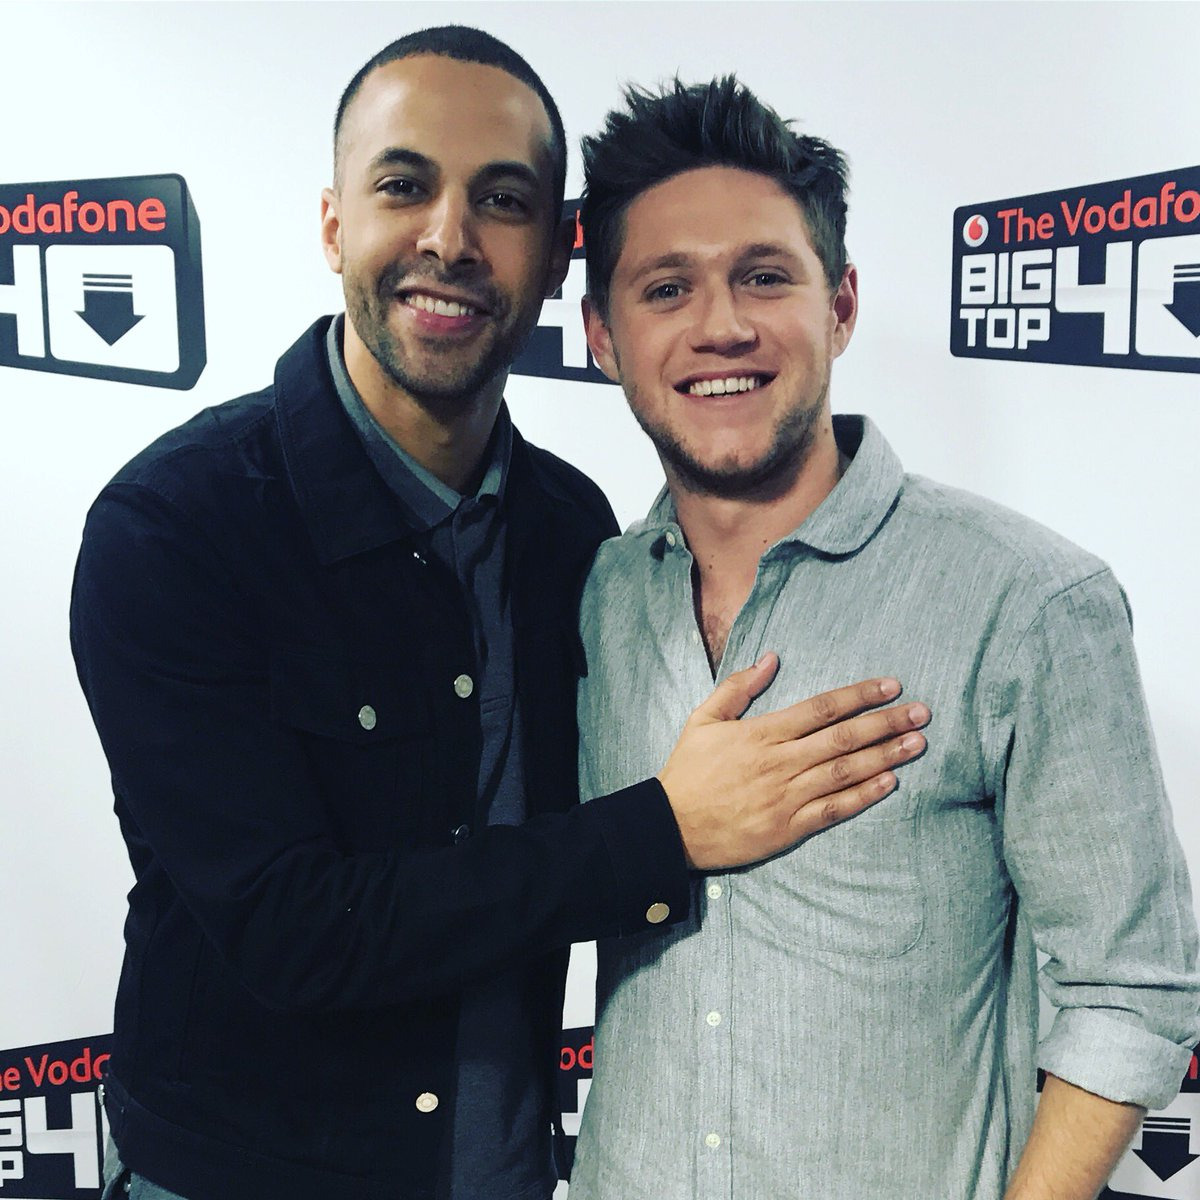 He's got a heart of gold this boy! Great to have @NiallOfficial on the show today! Next week we'll see where #SlowHands charts @BigTop40